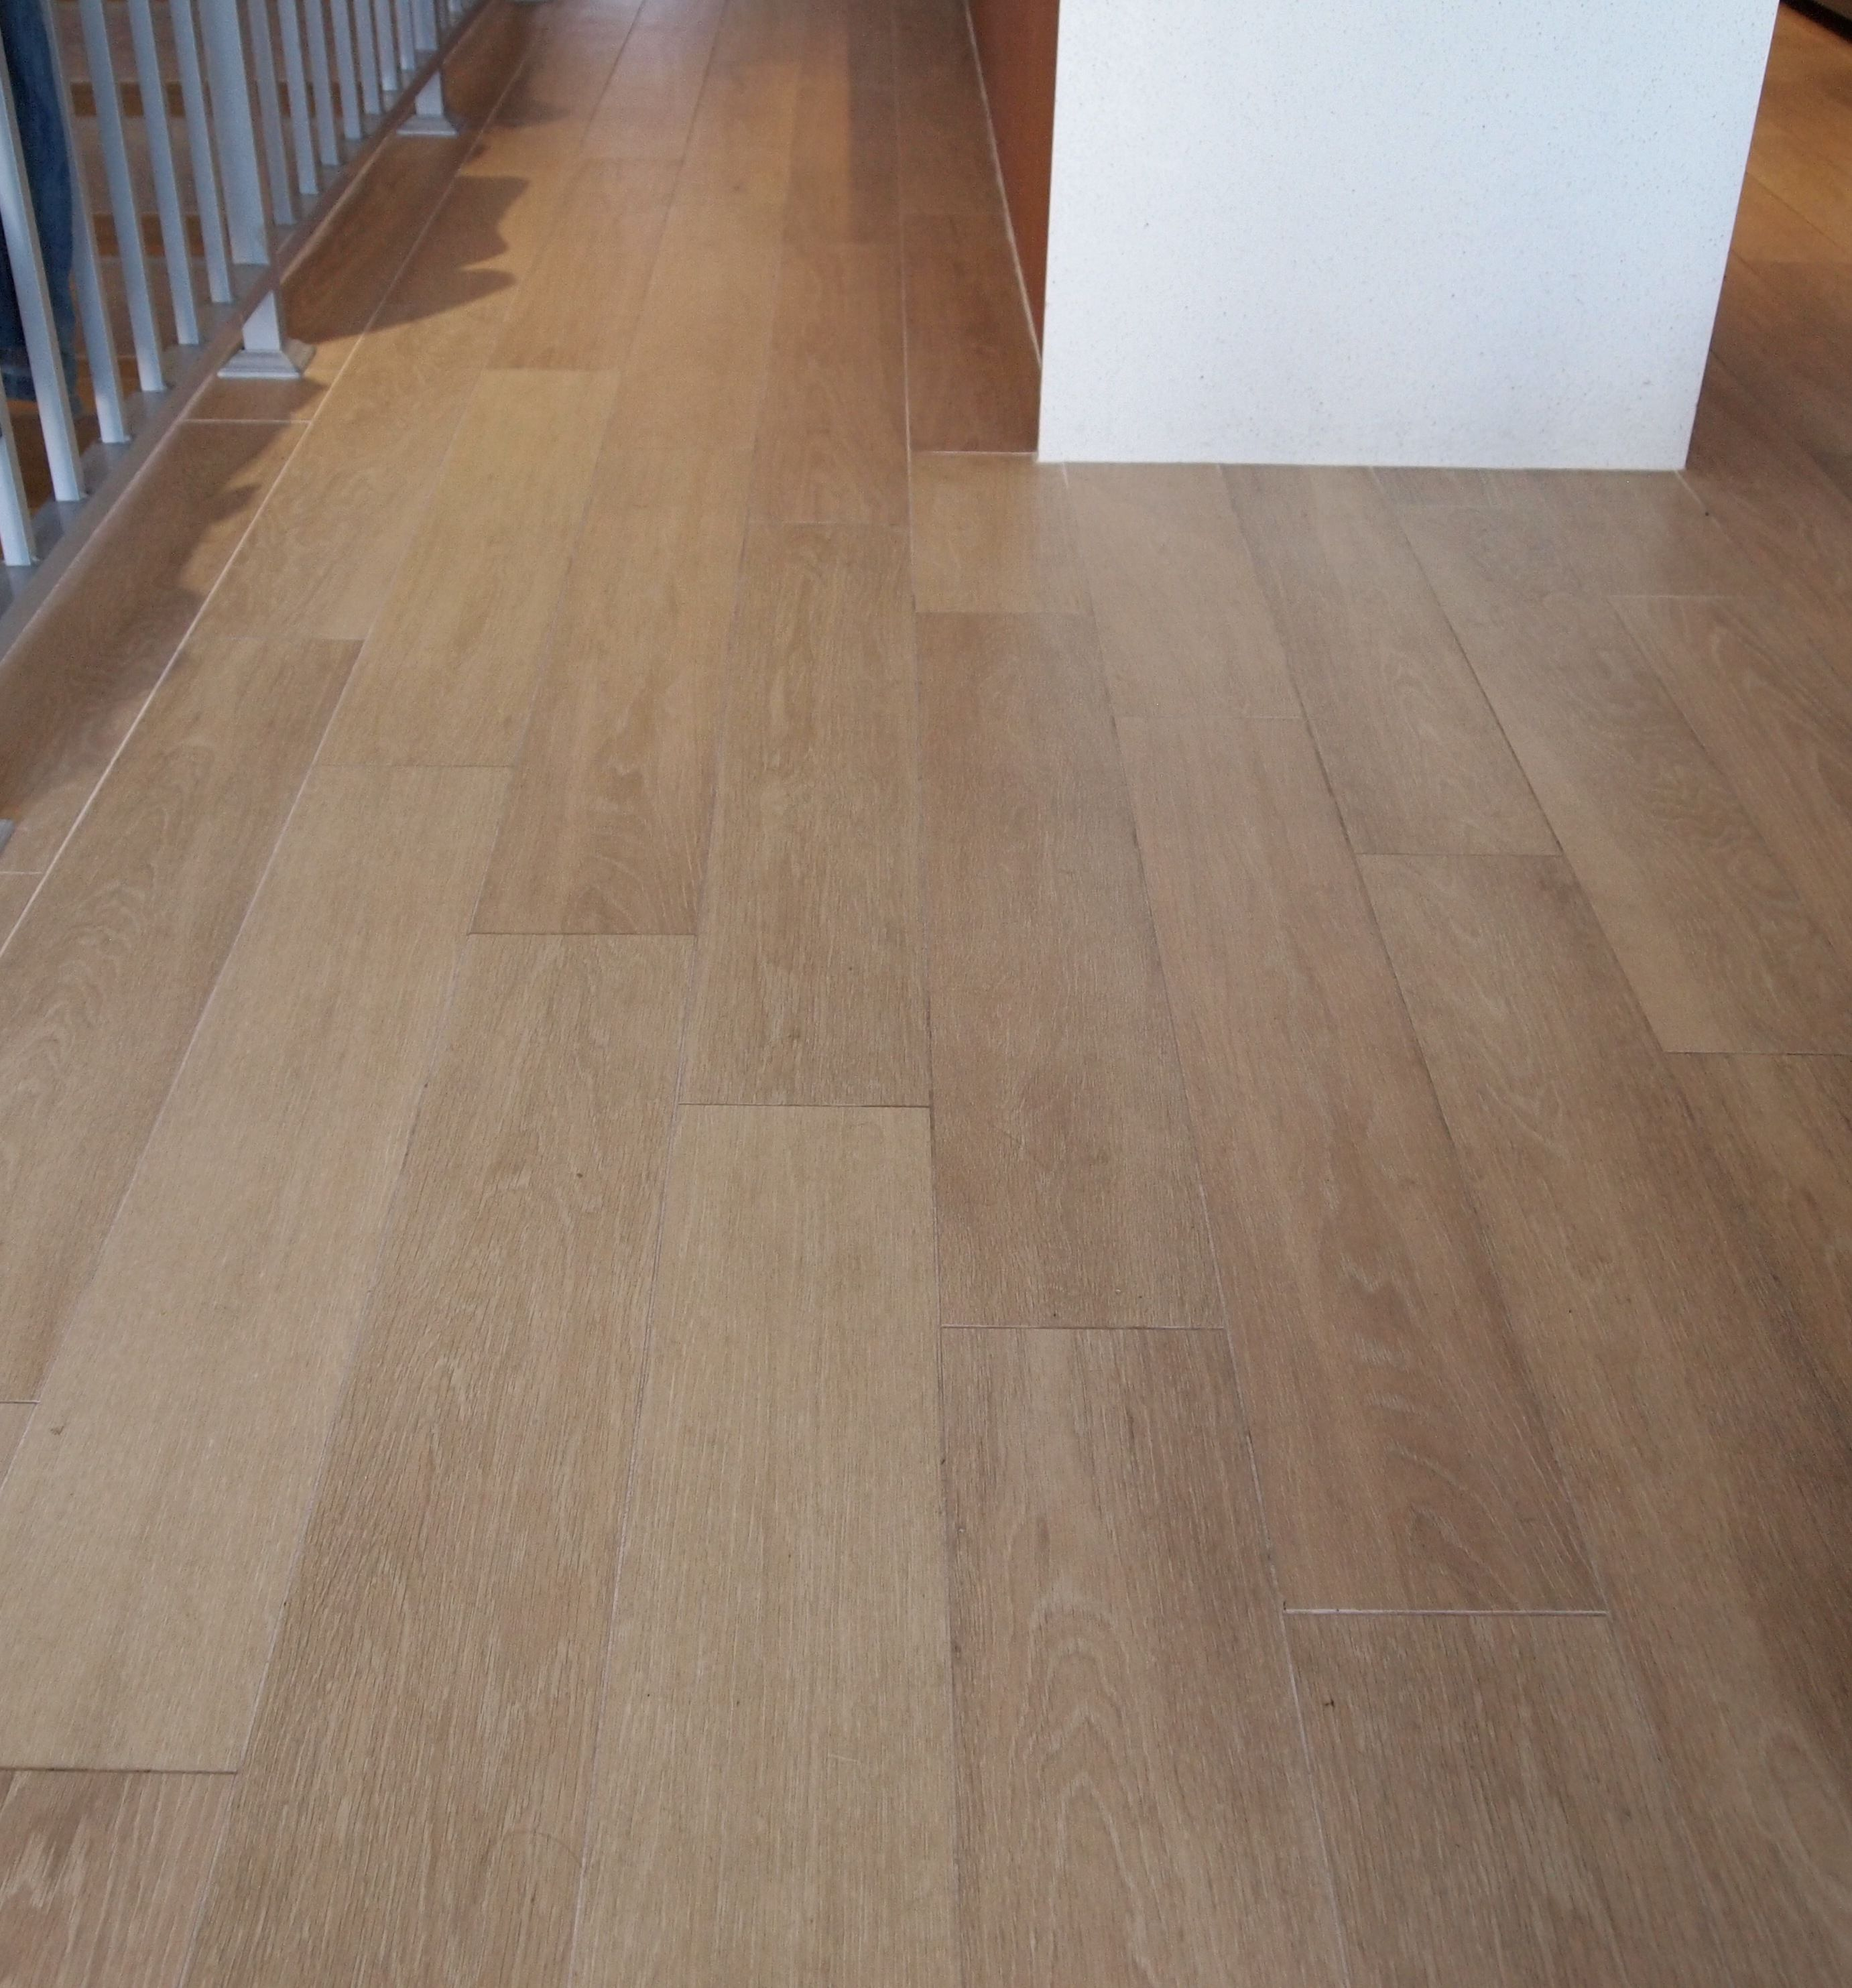 Spanish Wood Look Porcelain Floor Tiles. Great For